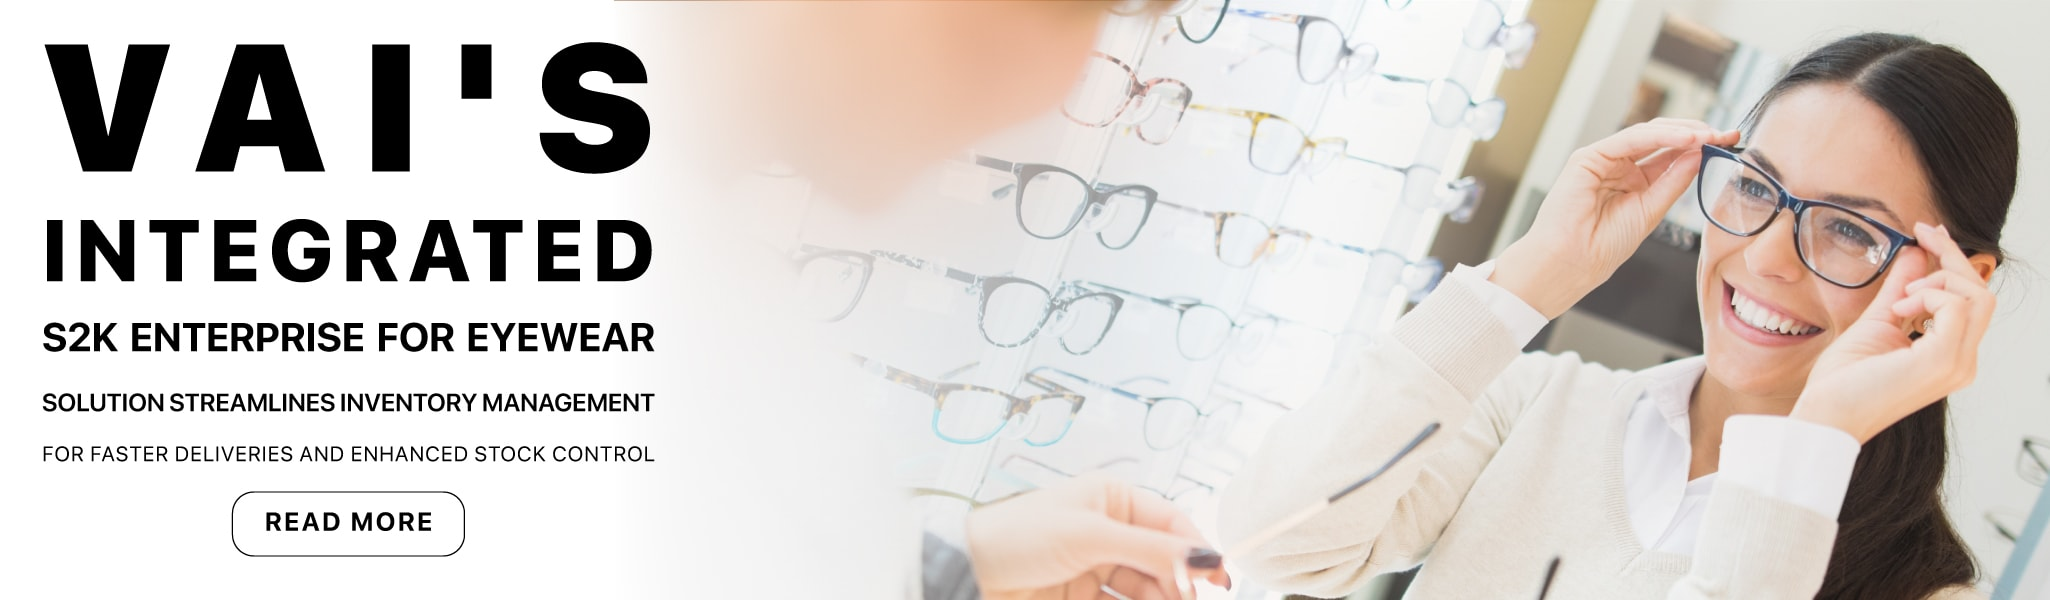 VAI's Integrated S2K Enterprise for Eyewear Solution Streamlines Inventory Management for Faster Deliveries and Enhanced Stock Control | Read More